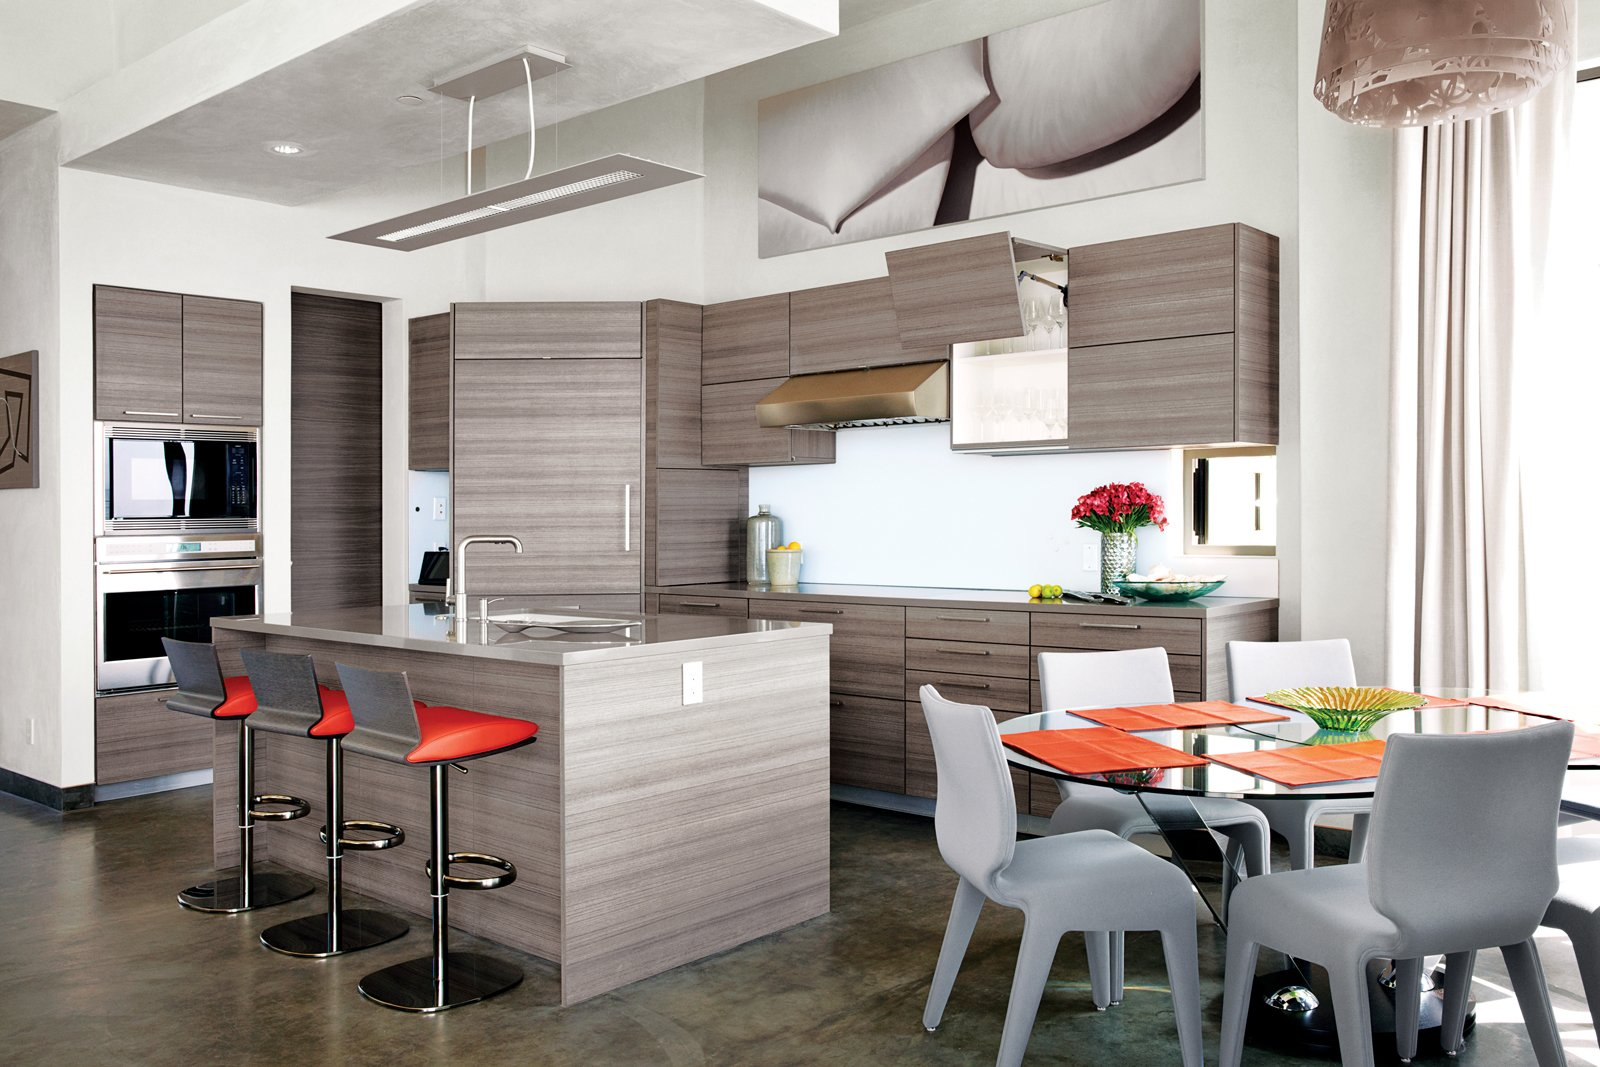 Cranston collaborated with project designer John A. Turturro and builder Bryan Henson of Allen Associates on the 2,400-square-foot house. The architect of record is Larry Graves of Alliance Design Group. Eco-conscious materials were key: In the kitchen, Poggenpohl cabinets were chosen for their recycled wood content and for the company's low-waste factory efficiency. The Sub-Zero Wolf refrigerator uses less energy than a 100-watt light bulb.  Roche Bobois Ublo barstools pull up to the kitchen island; a Reduced fixture from Louis Poulsen hangs above. The dining area features a Lunch Time dining table and Chabada chairs, also from Roche Bobois.  To learn more about the Cranston Residence project and its players, please visit www.3palmsproject.com Tagged: Kitchen, Wood Cabinet, and Granite Counter.  Photo 2 of 18 in Actor Bryan Cranston's Green Beach House Renovation